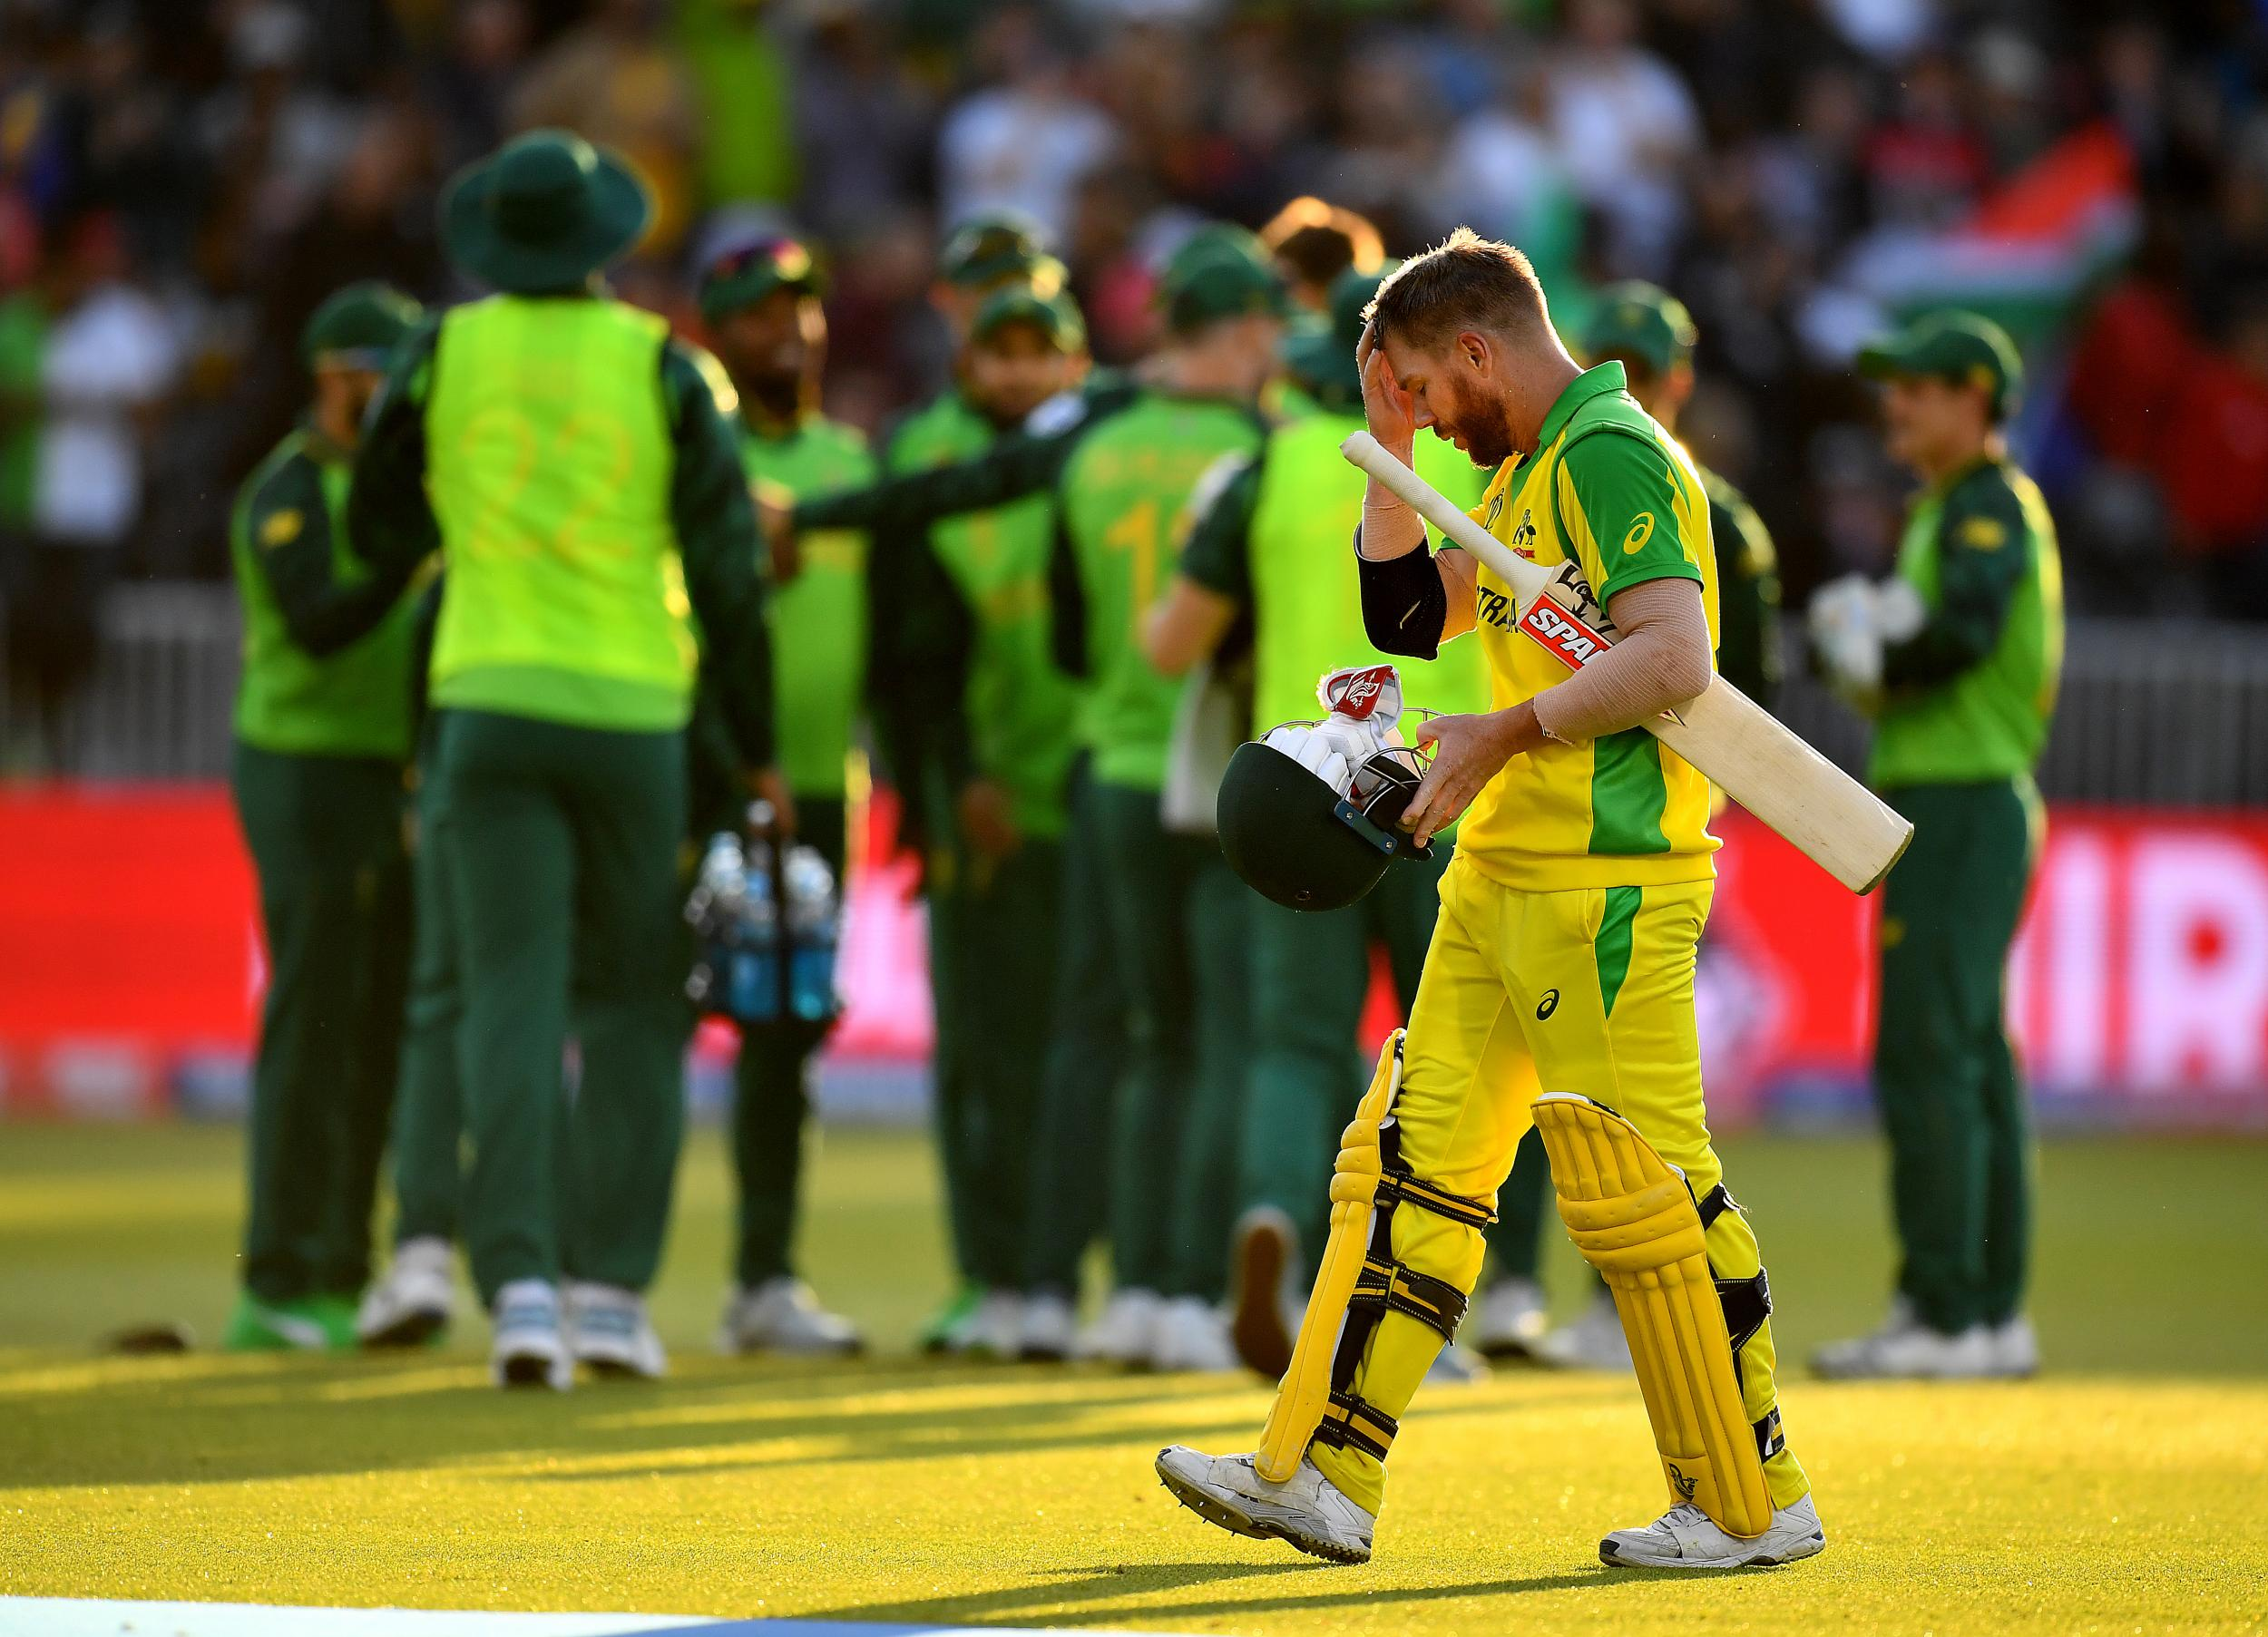 South Africa cricket - latest news, breaking stories and comment